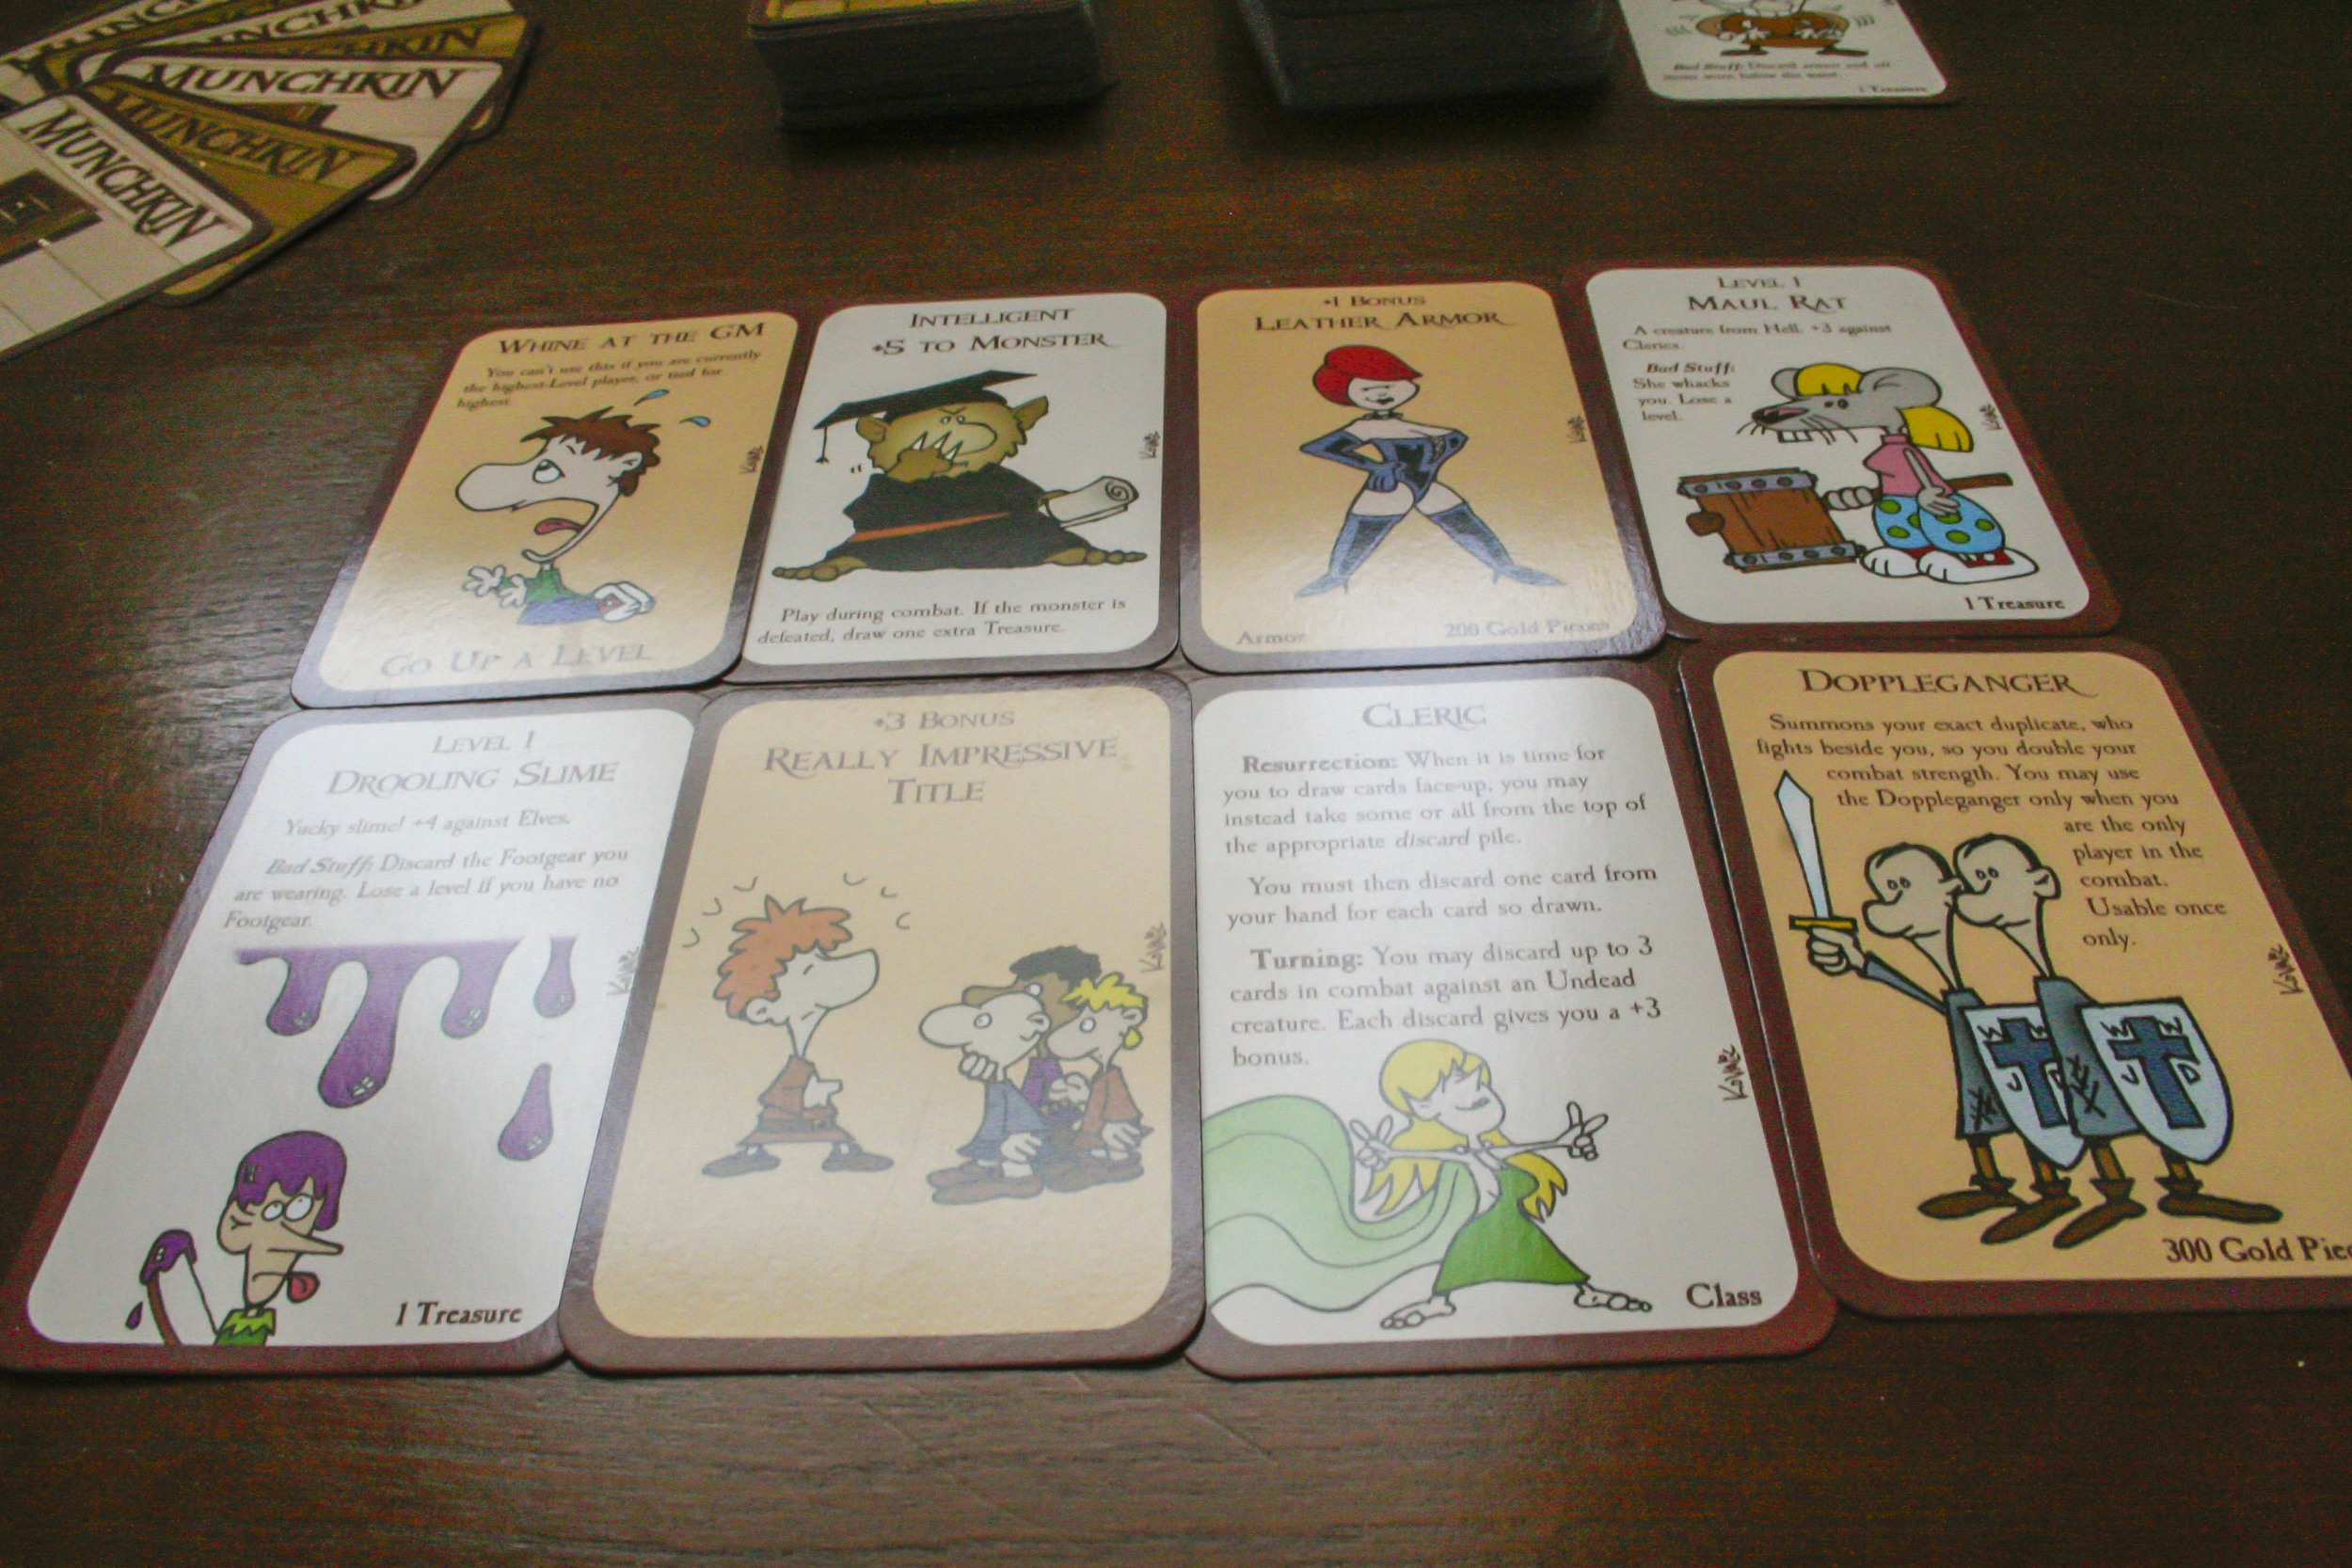 a close up of some of the cards. they are hilarious, so the first few play throughs may take some extra time, as you will want to stop and read all the cards!